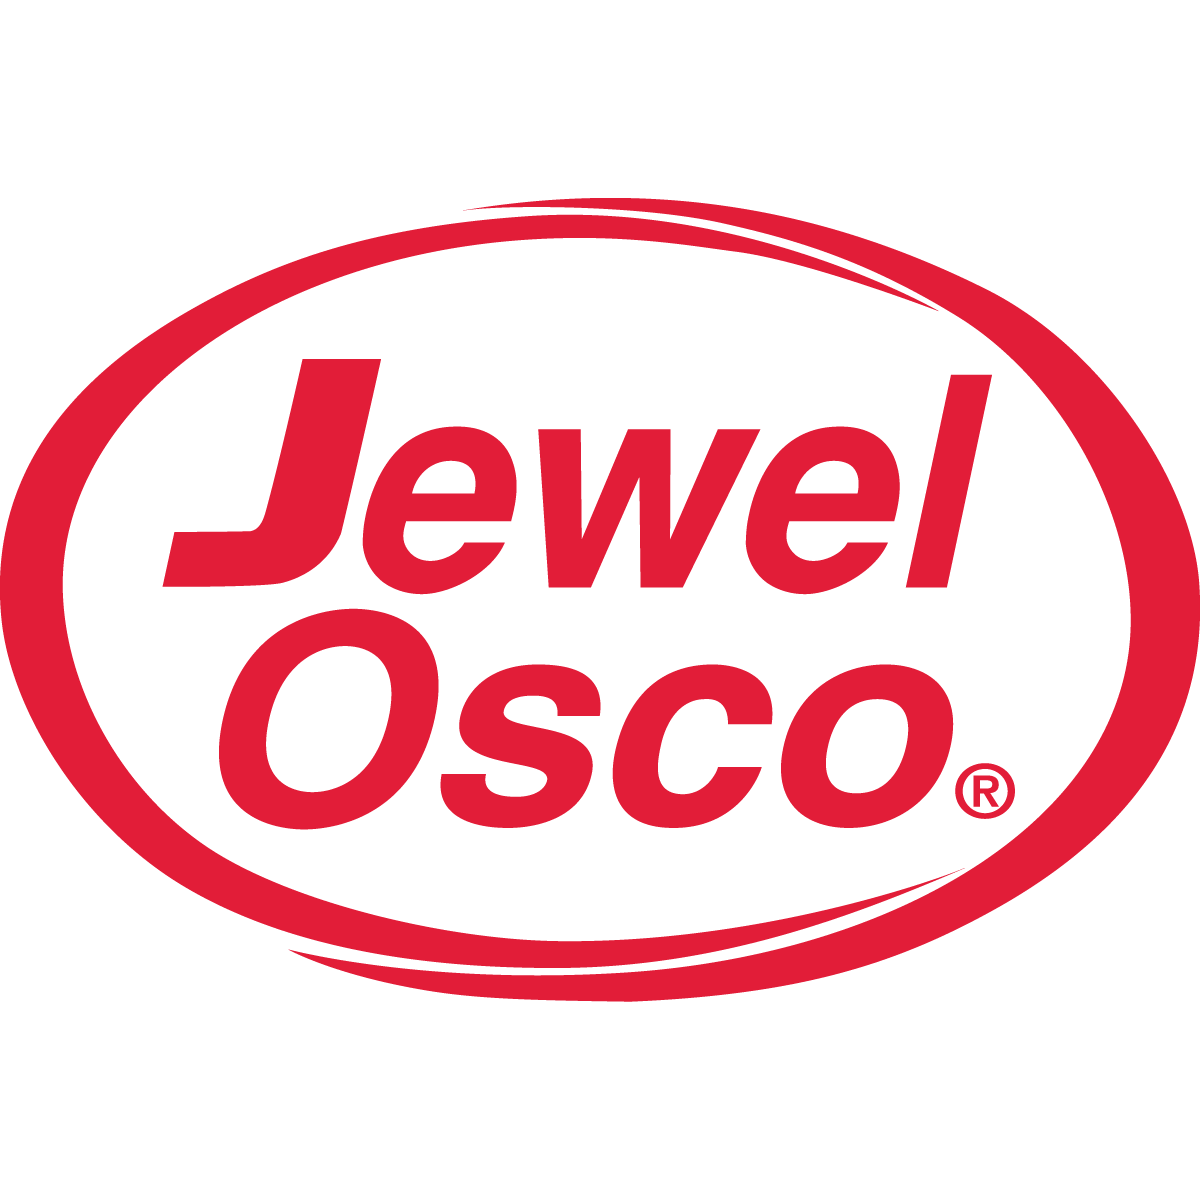 Jewel-Osco Pharmacy - Algonquin, IL 60102 - (847)854-0242 | ShowMeLocal.com